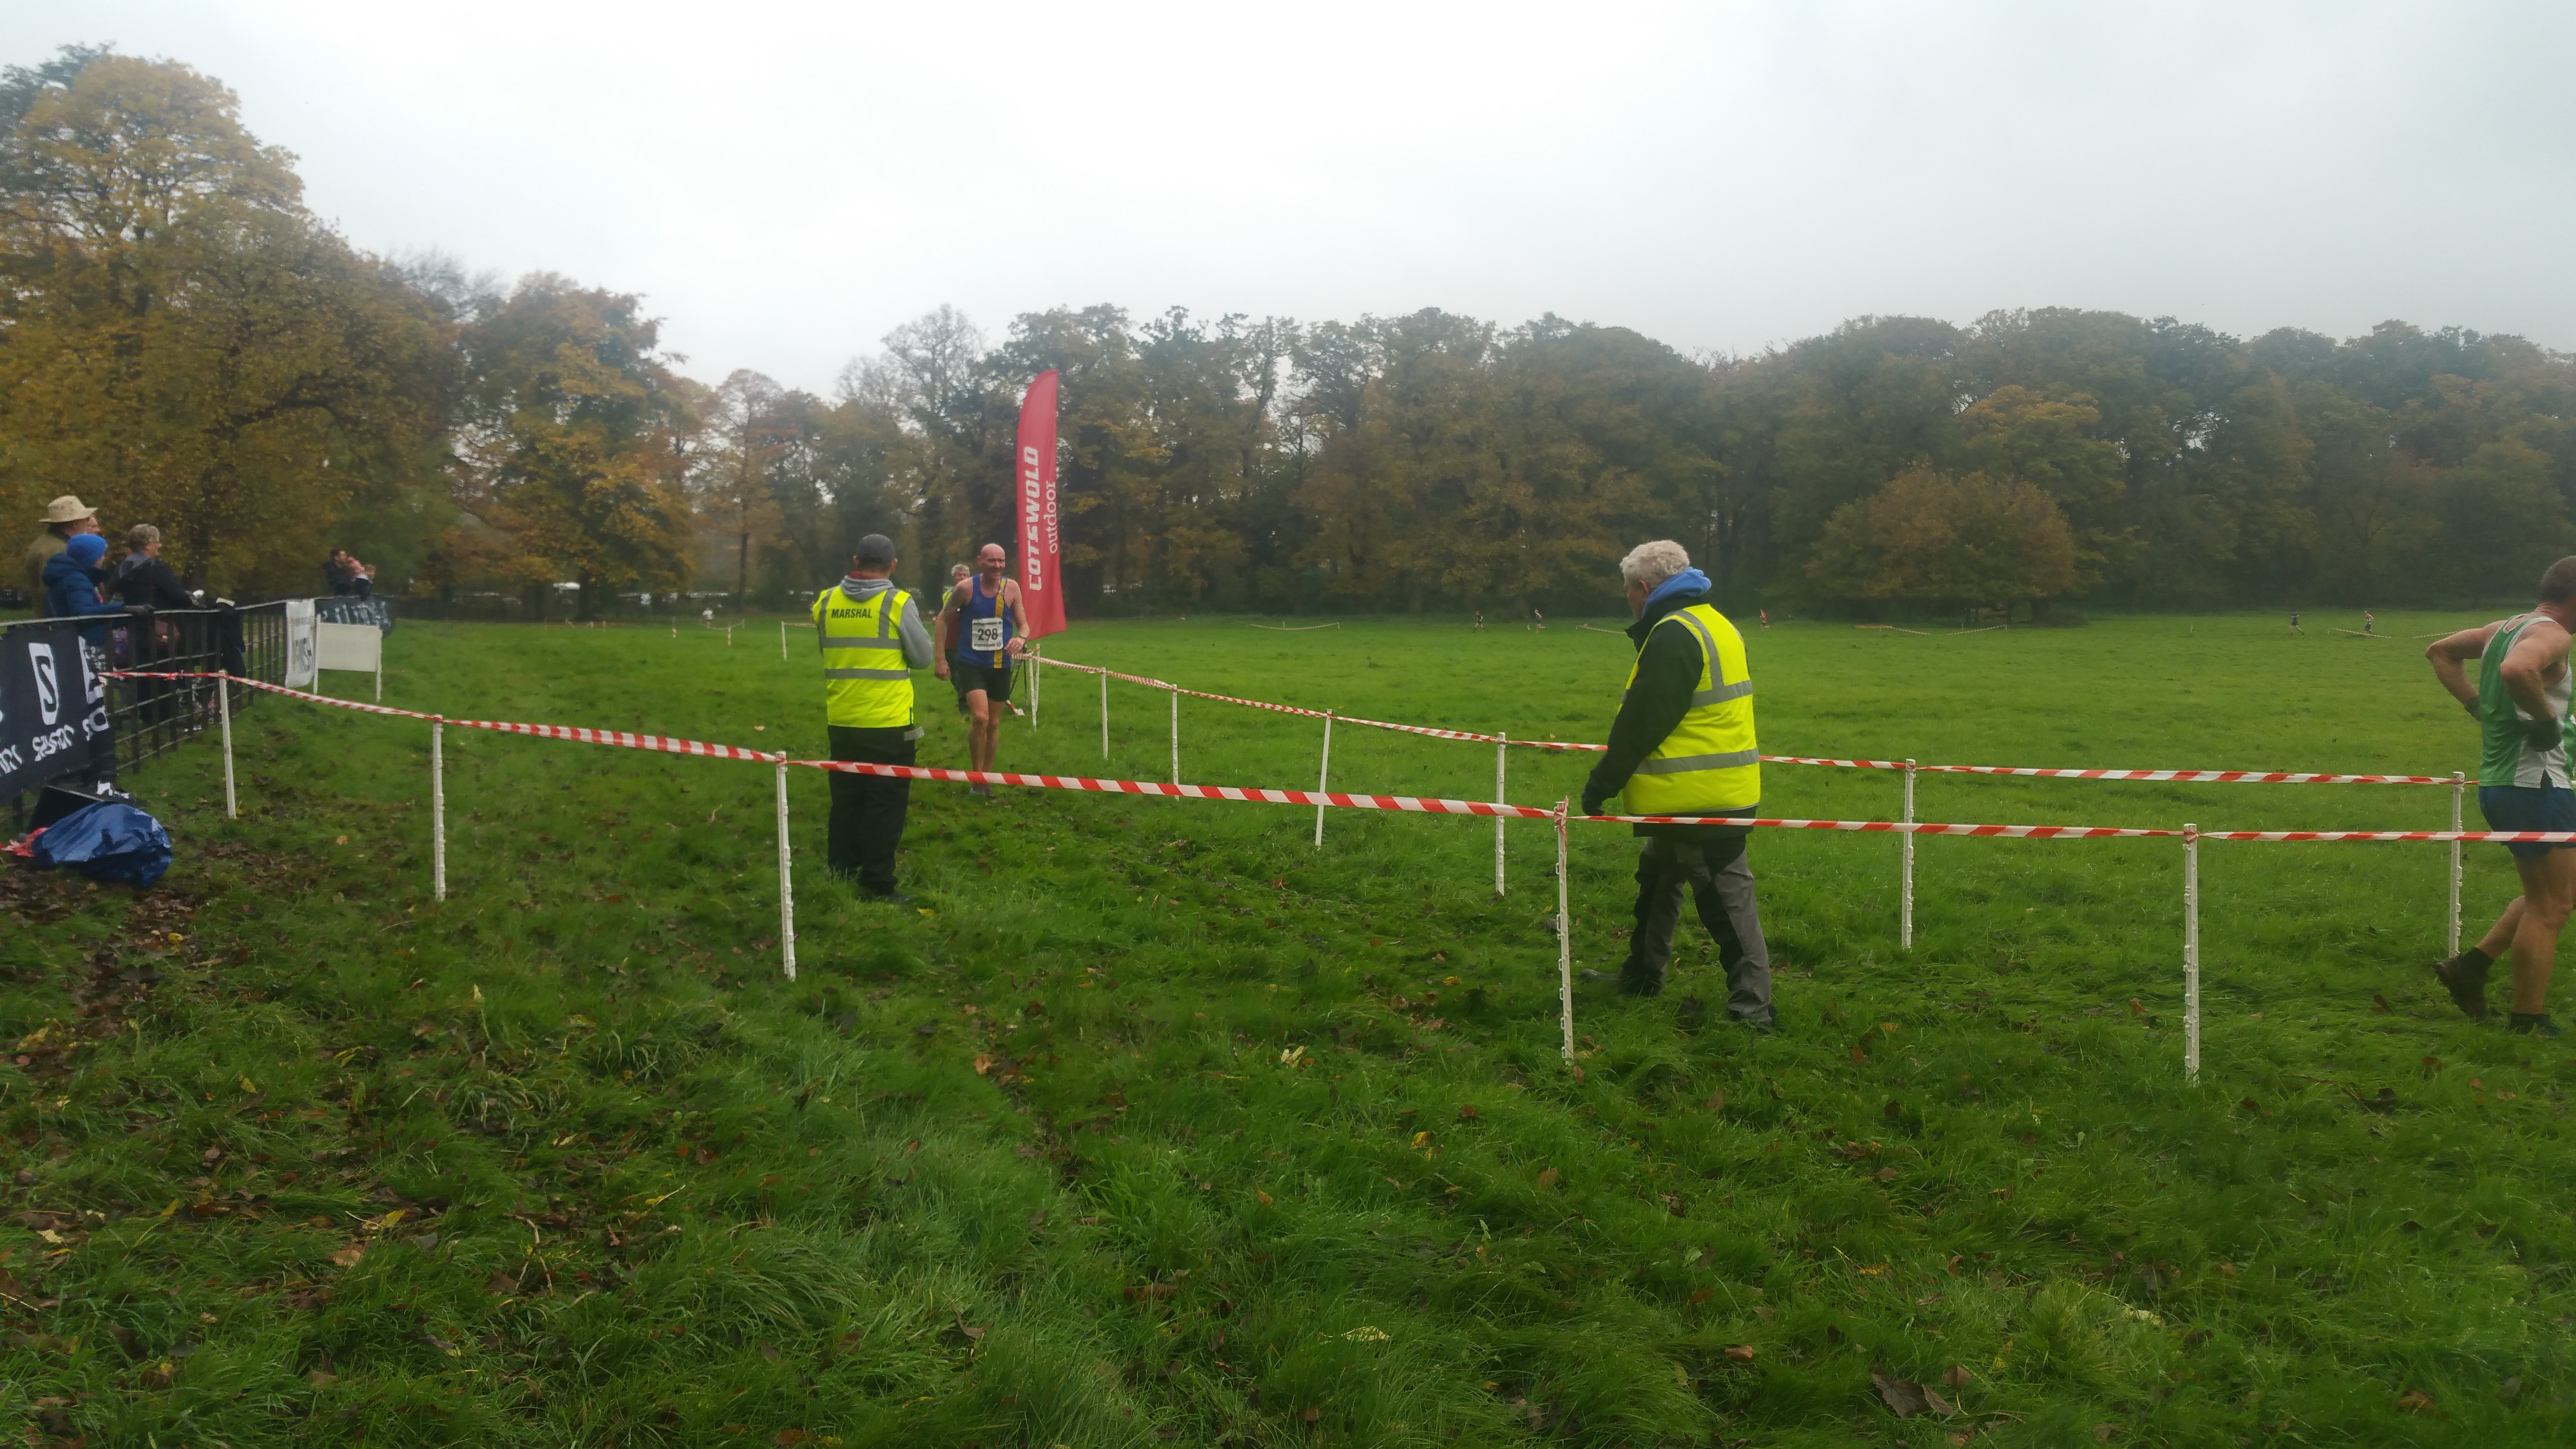 Medical Cover at Mad Jacks running Event Shrewsbury